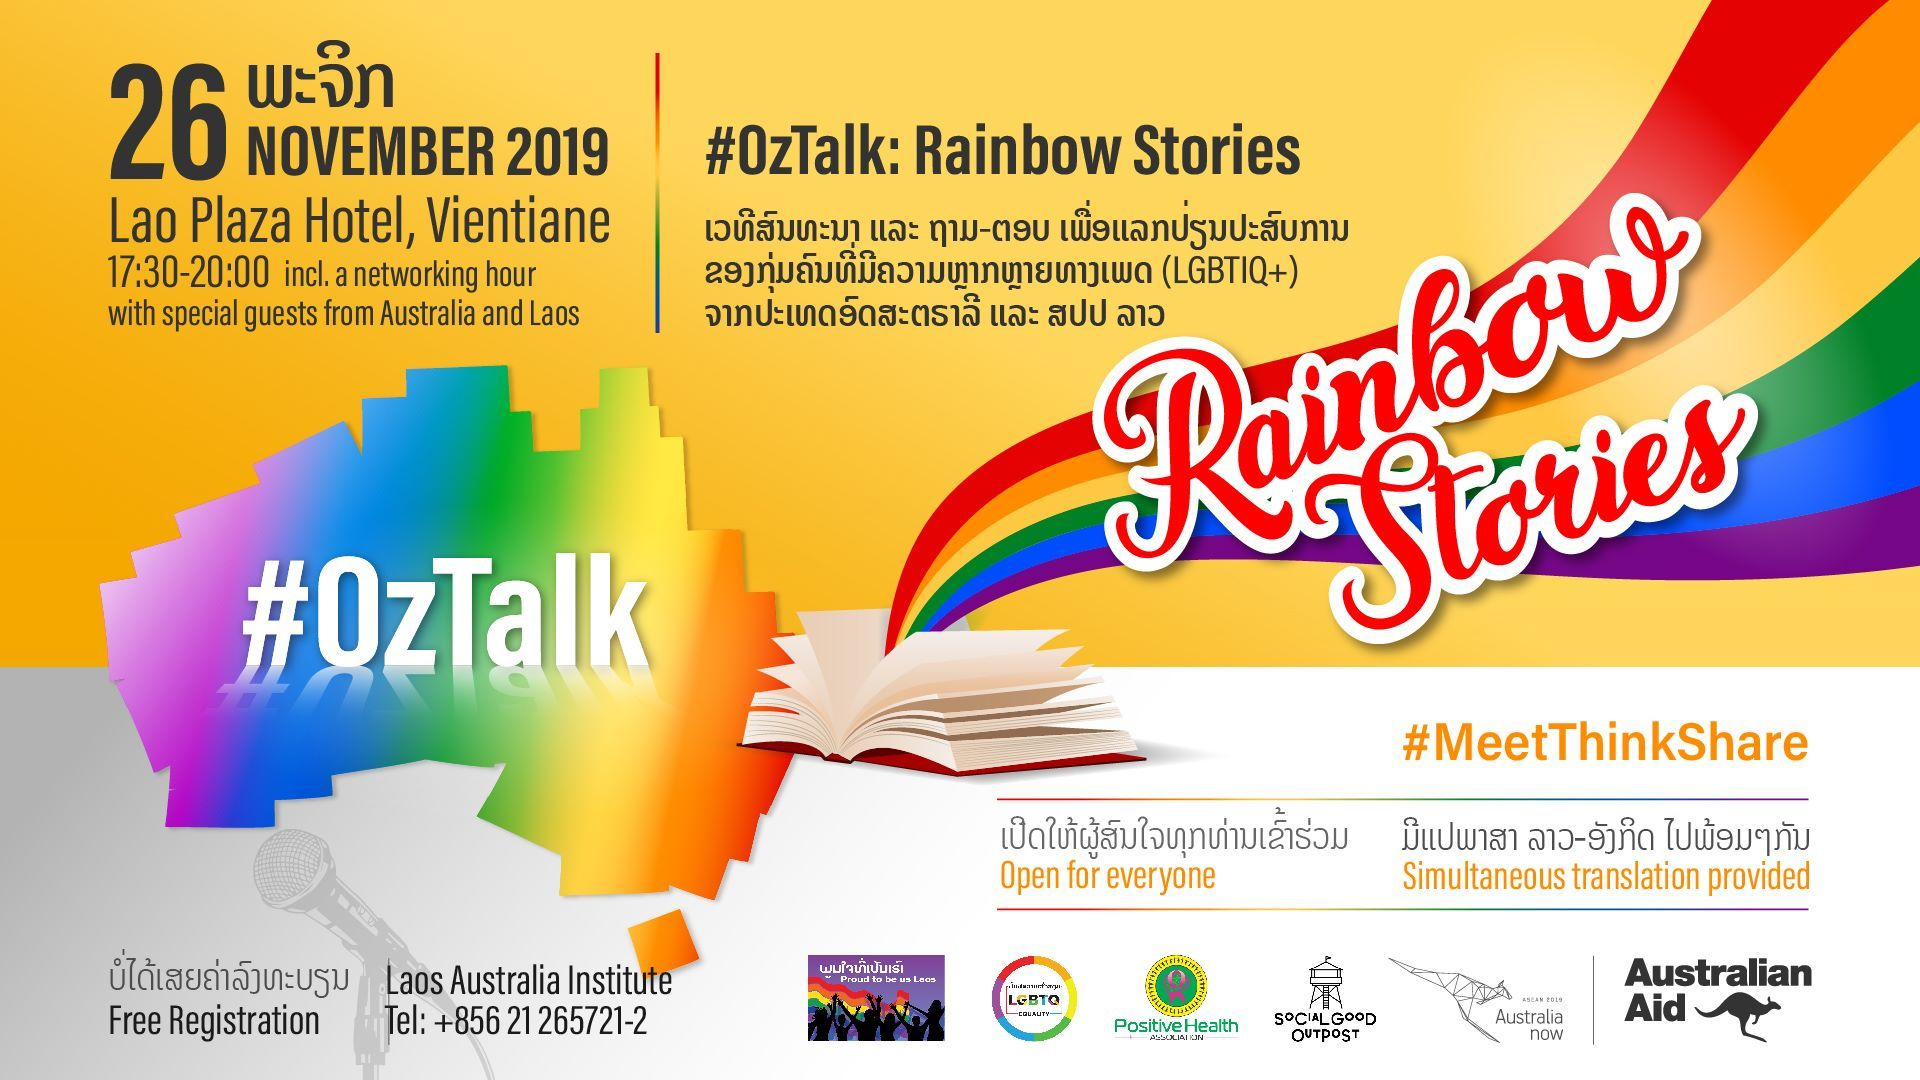 OzTalk: Rainbow Stories